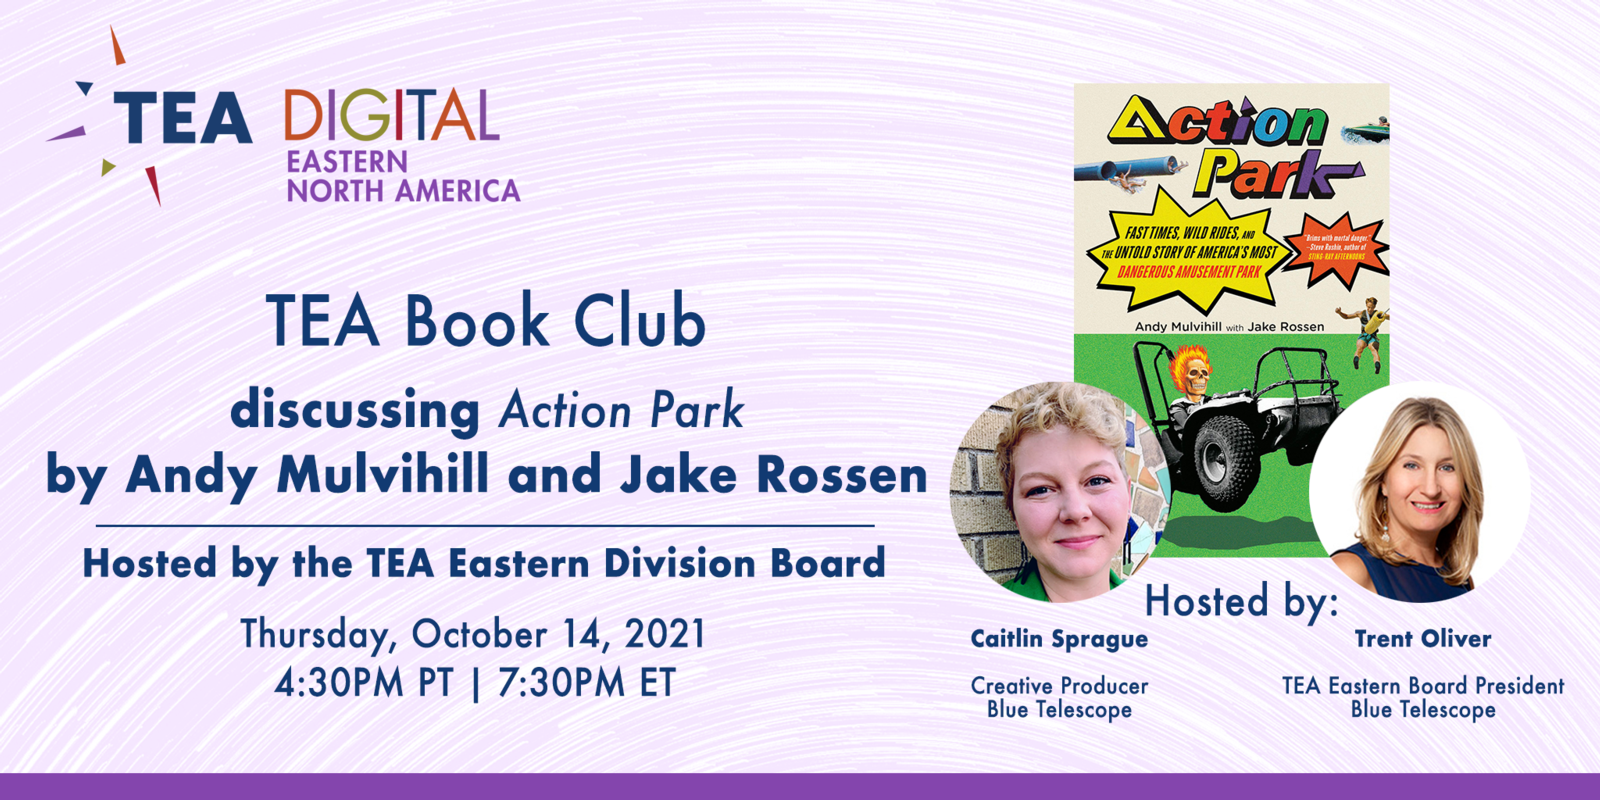 TEA Book Club discussing ACTION PARK by Andy Mulvihill and Jake Rossen